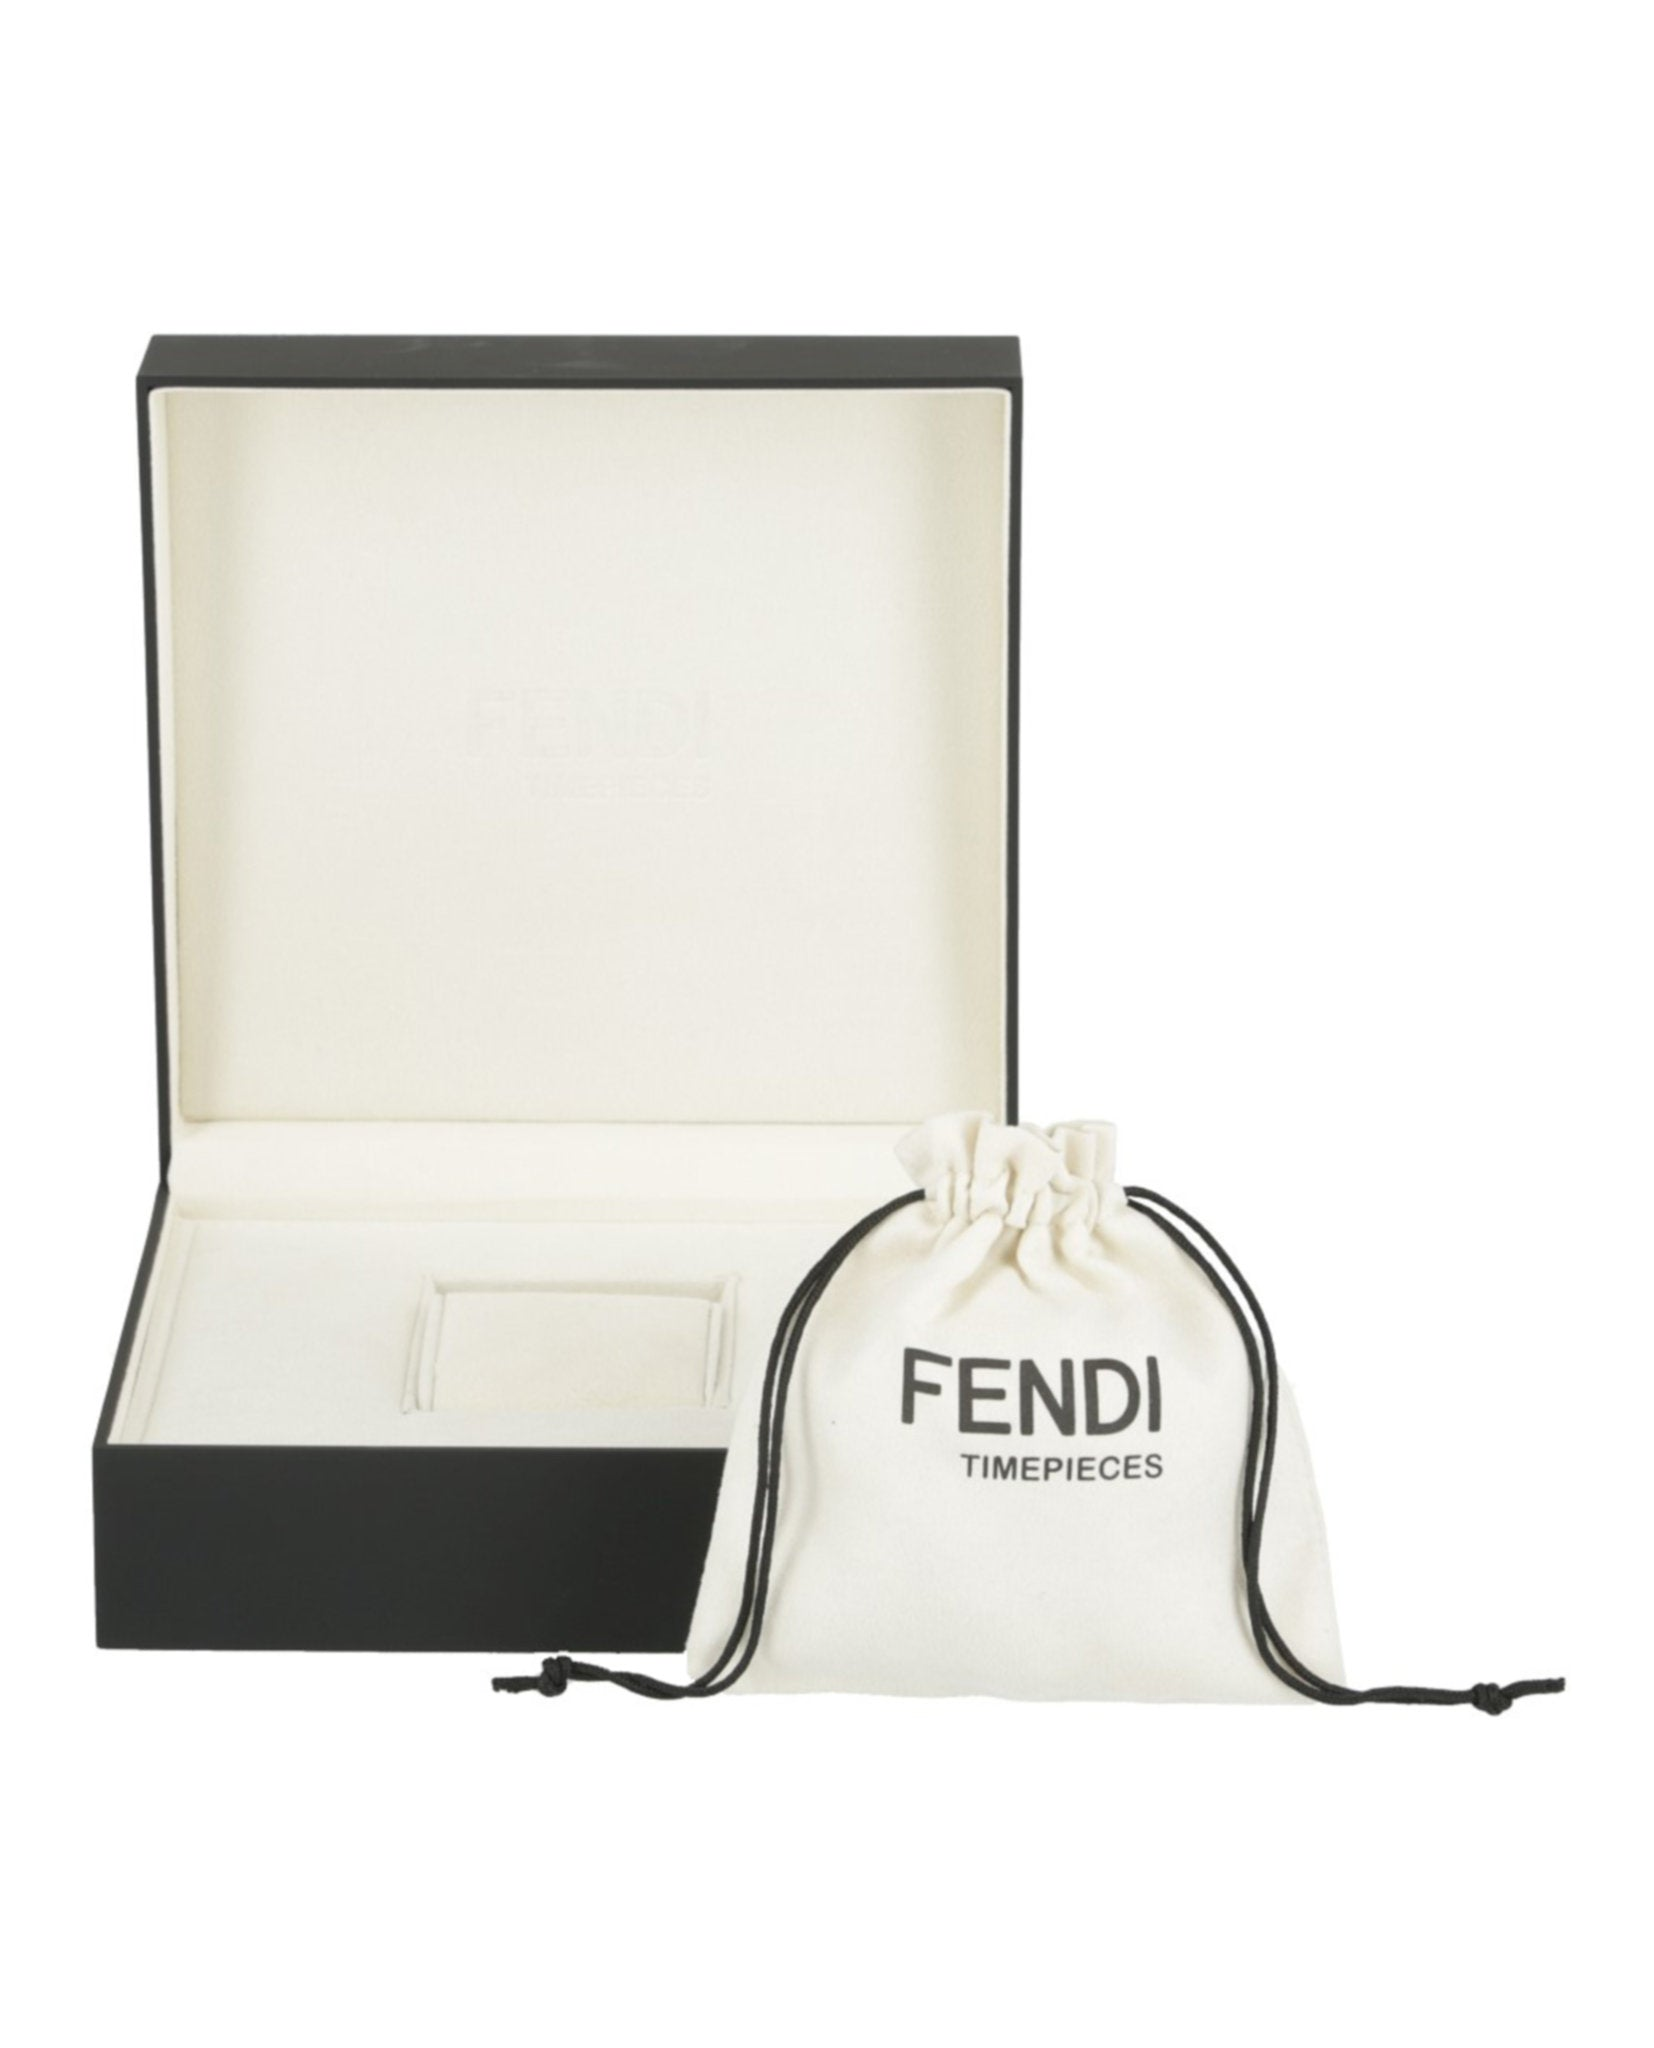 Fendi Momento Fendi Bugs Watch